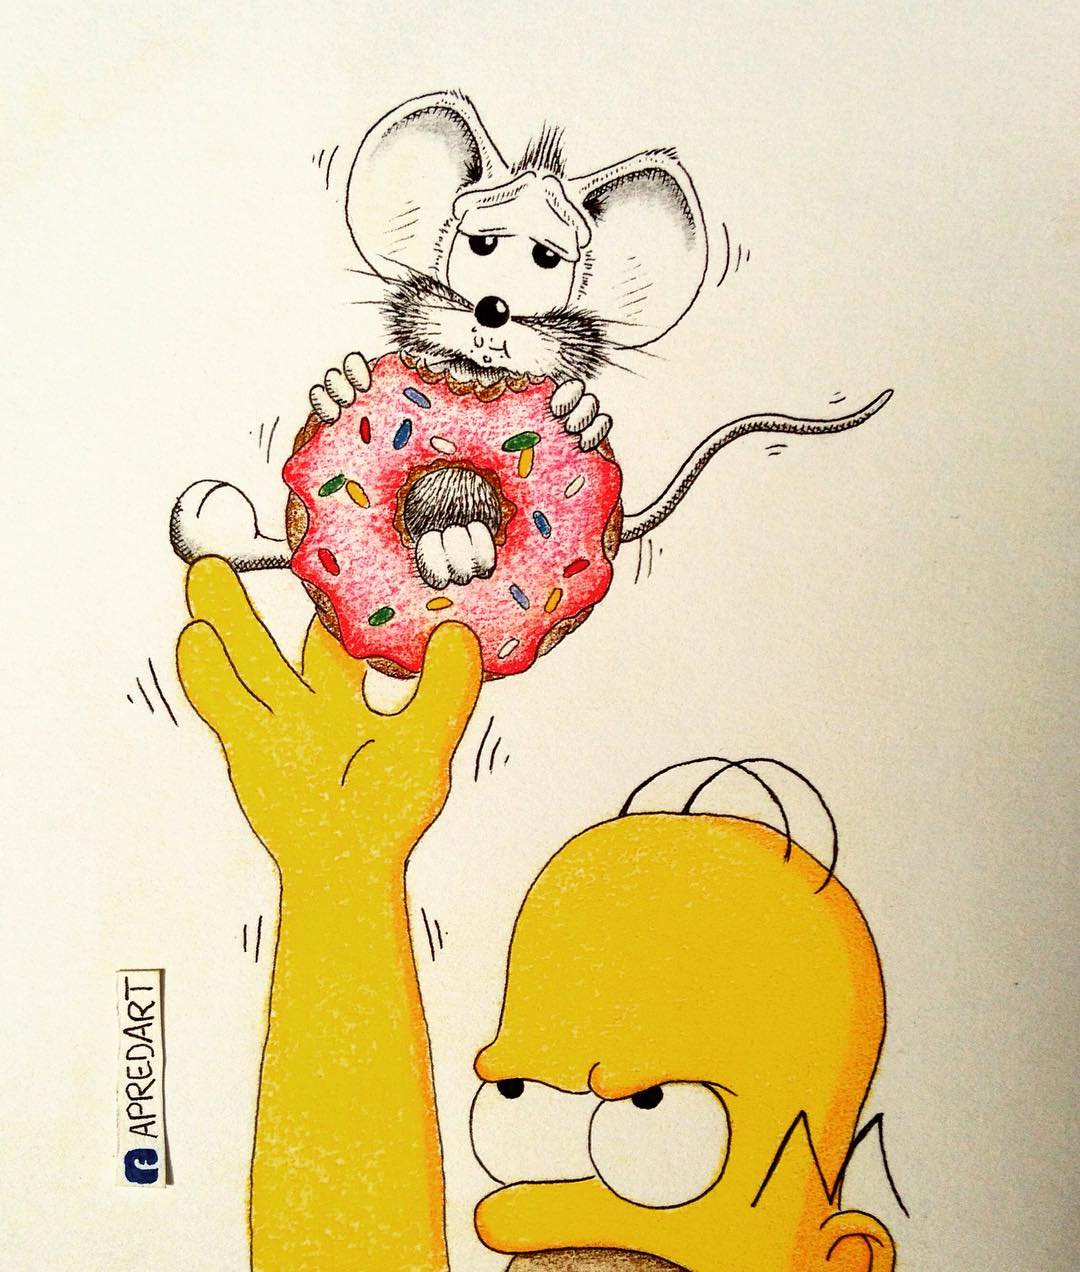 08-Homer-the-Simpsons-Loïc-Apreda-apredart-Drawings-of-Rikiki-the-Mouse-and-his-Famous-Friends-www-designstack-co